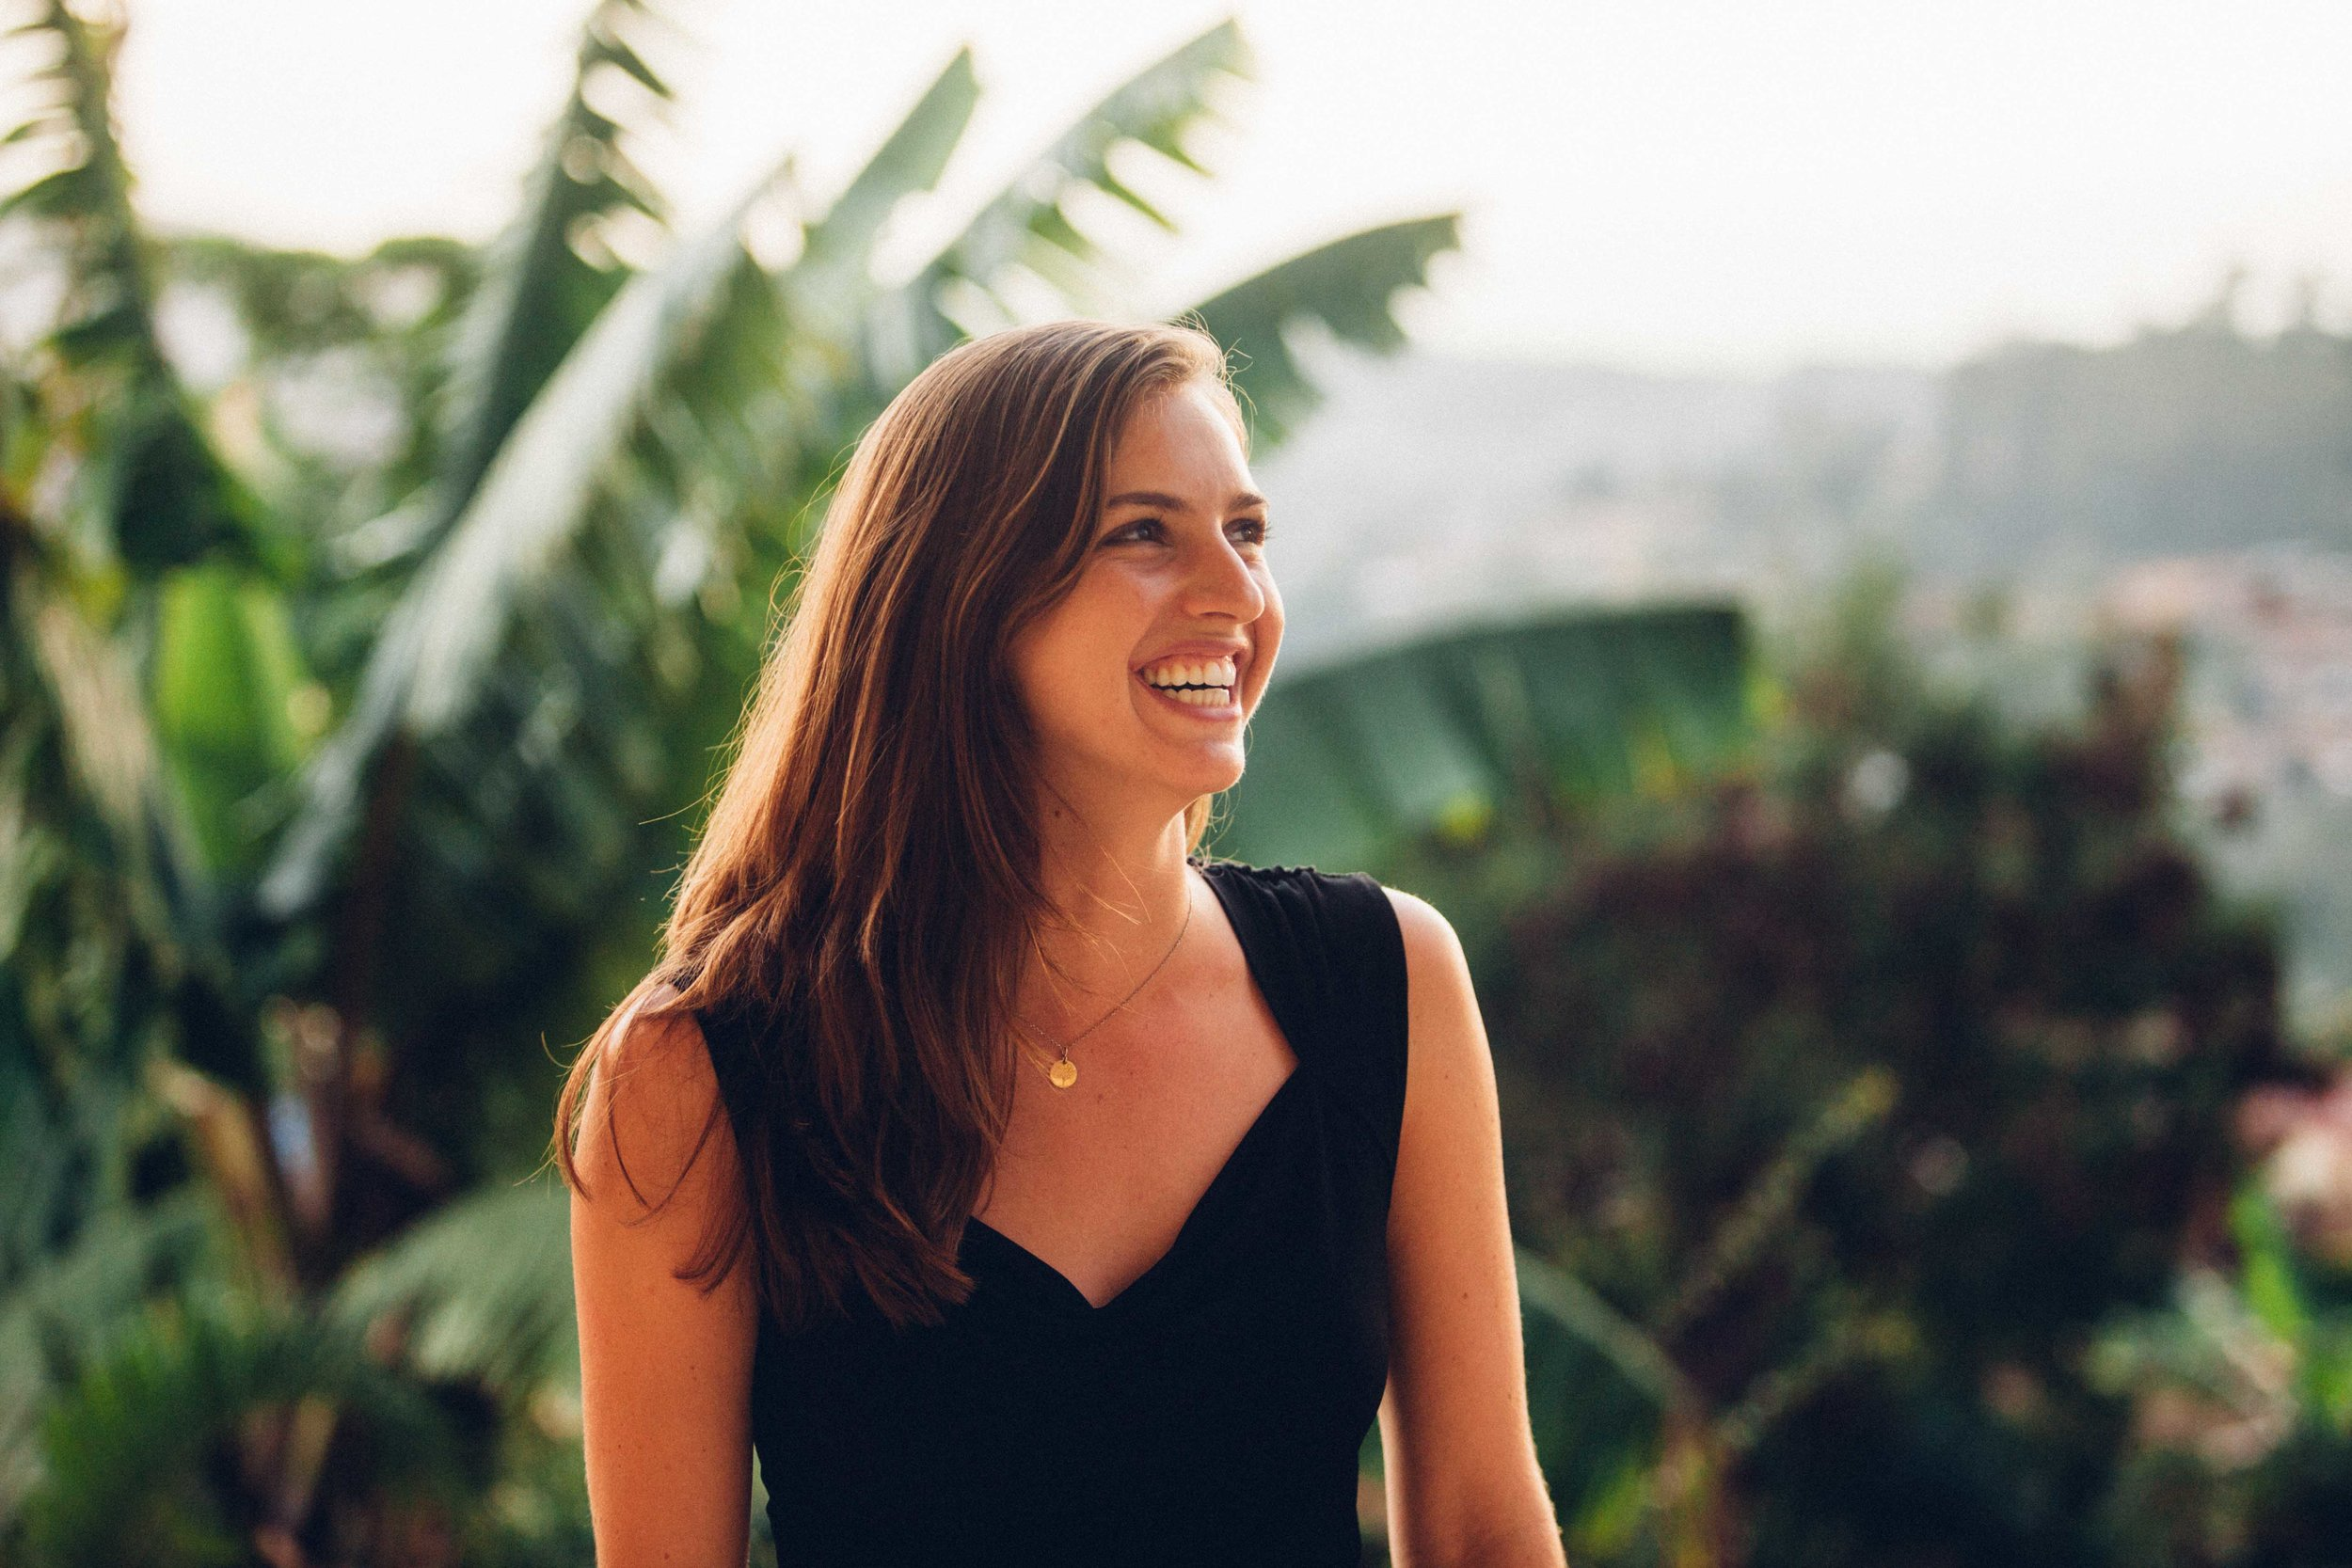 CEO and Co-founder Ayla Schlosser